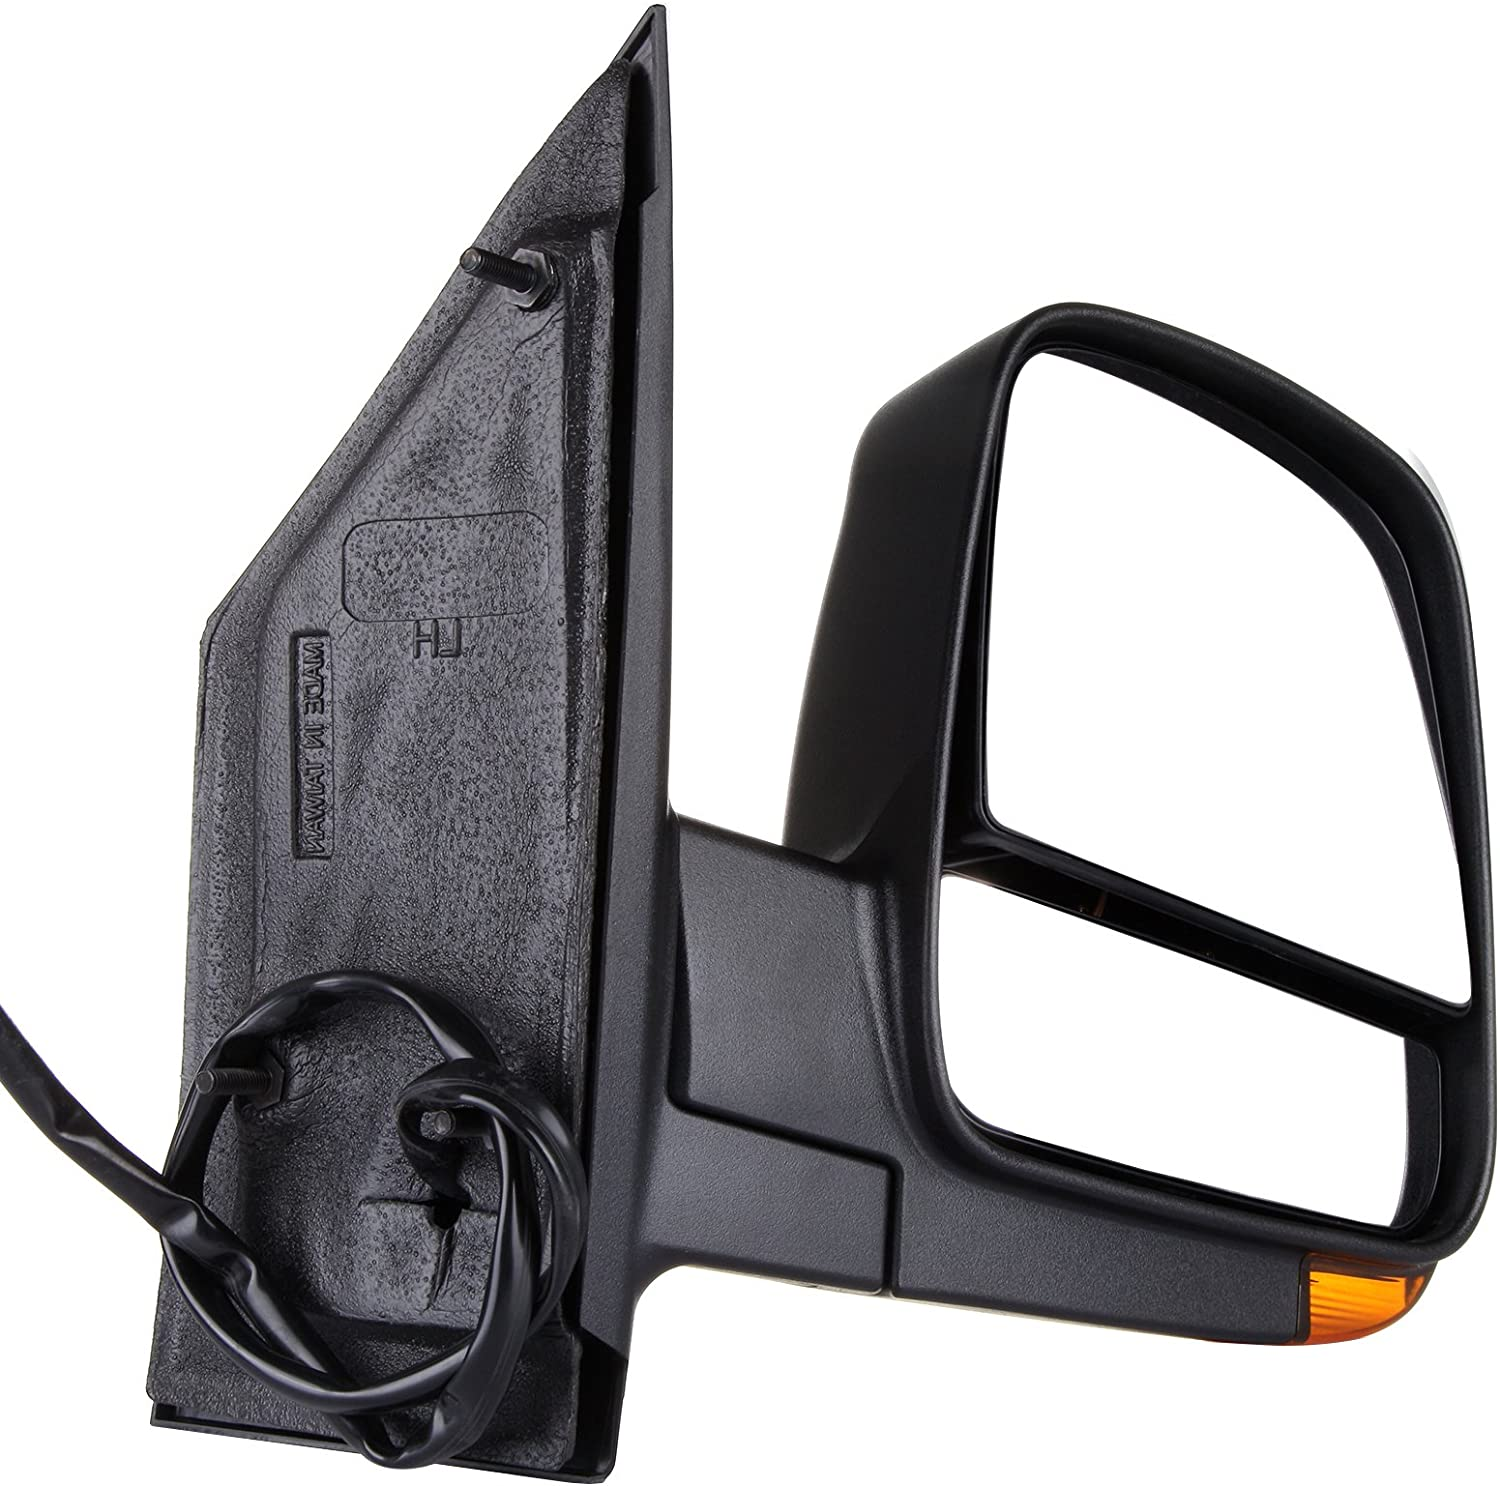 Mirror with Signal Light ONLY SCITOO Side View Mirror Driver Side Mirror Fit Compatible with 2008-2017 Chevrolet Express Van 2008-2017 GMC Savana Van 15227416 GM1320397